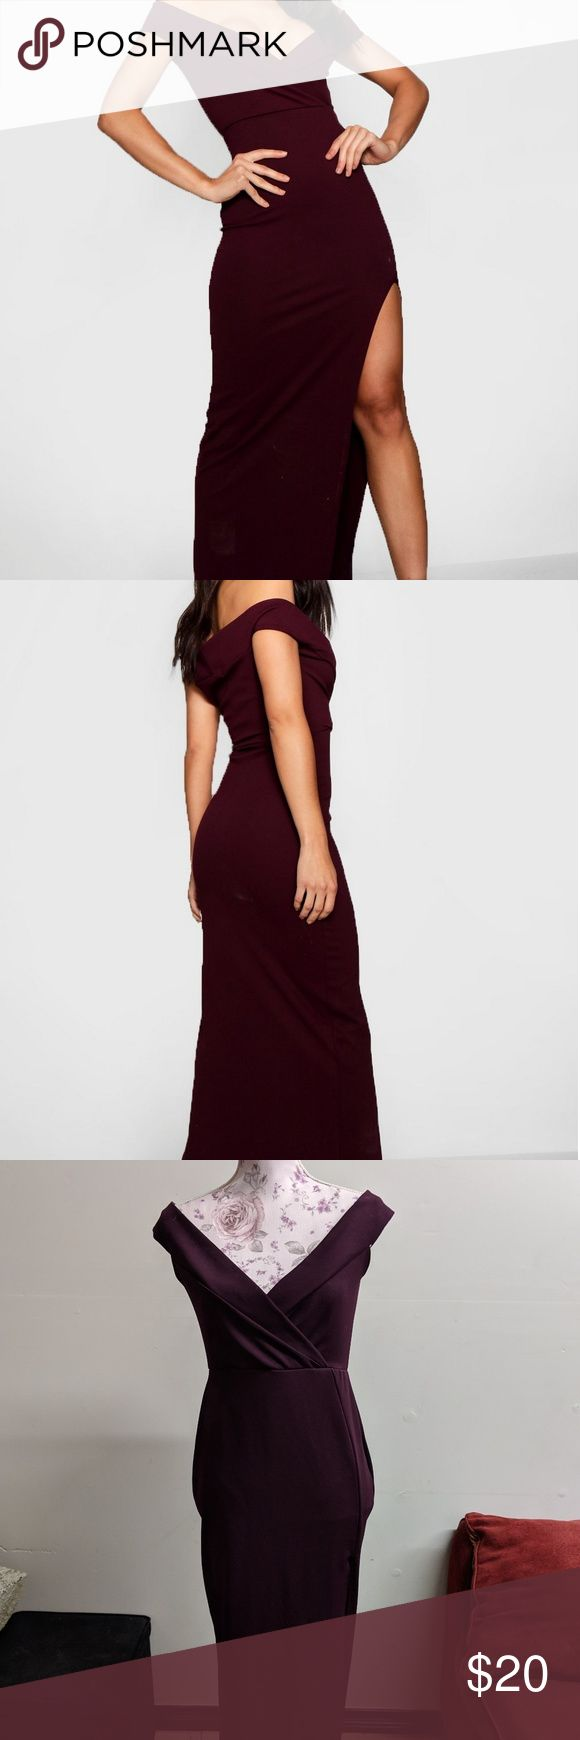 Wrap Top Off Shoulder Maxi Dress Off shoulder floor length maxi dress with left side slit. Color is called berry. It looks more plum than burgundy or ...